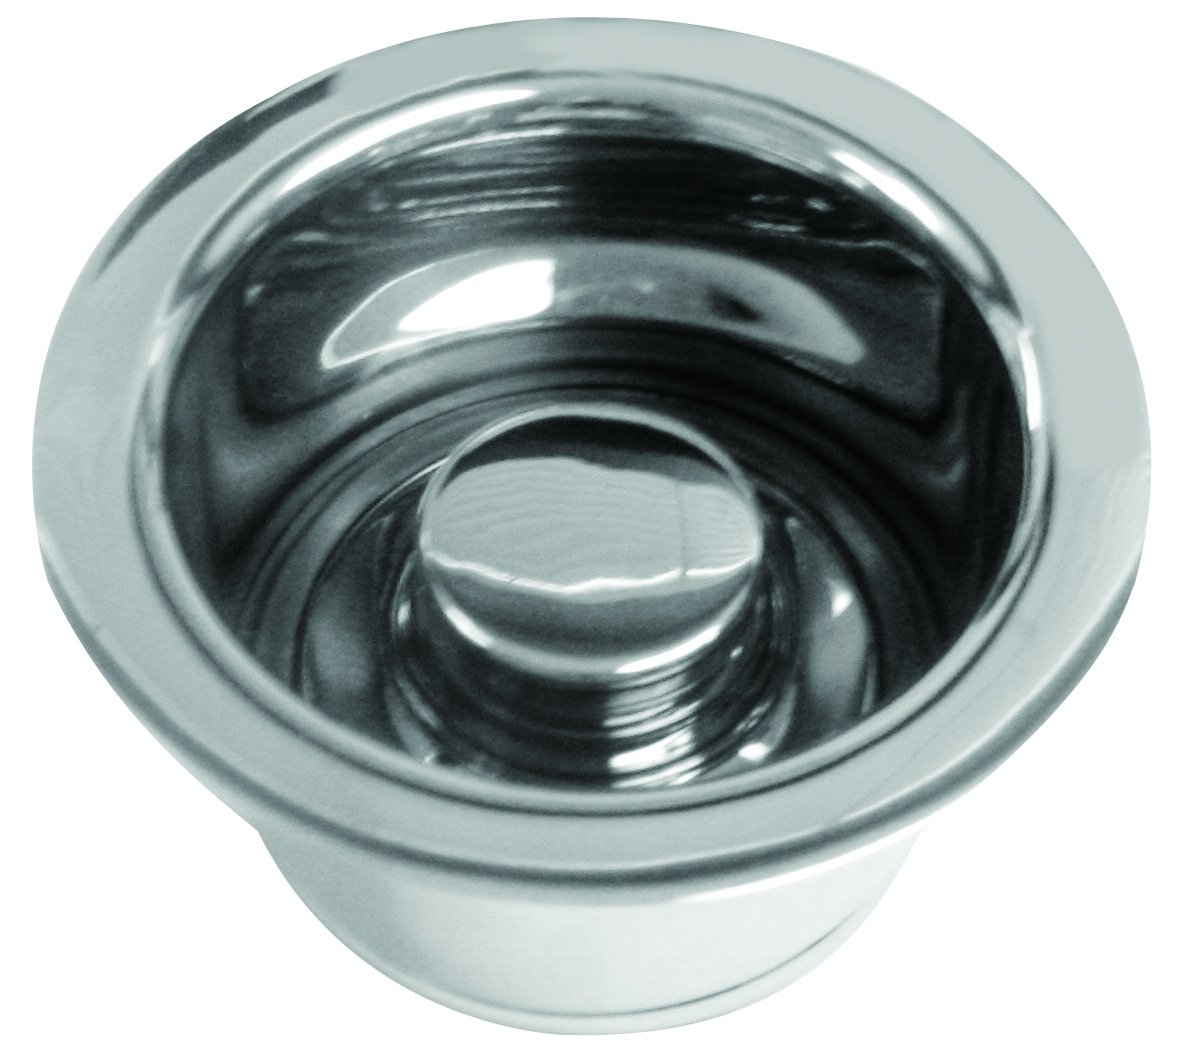 InSinkErator Style Extra-Deep Disposal Flange and Stopper in Polished Chrome